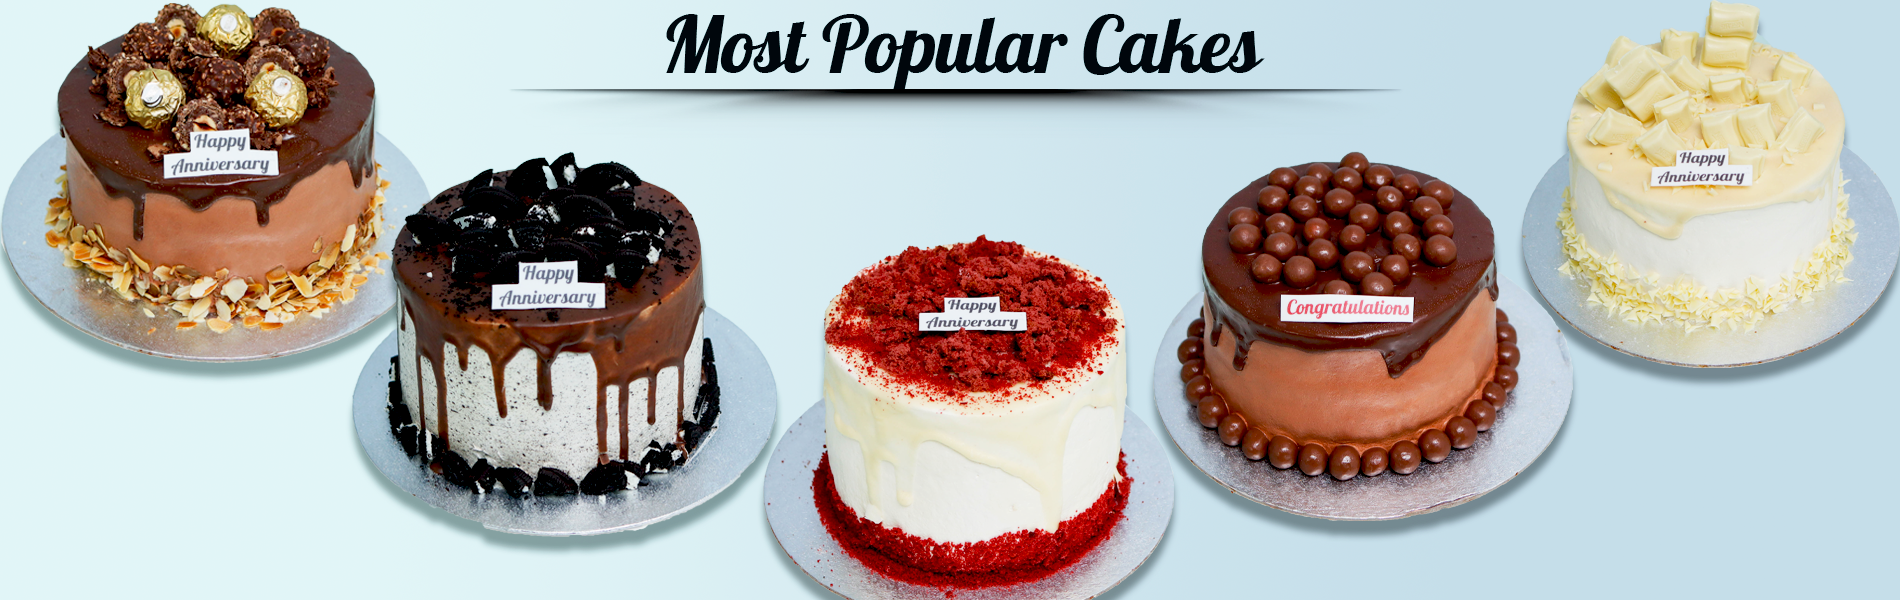 Most Popular Cakes